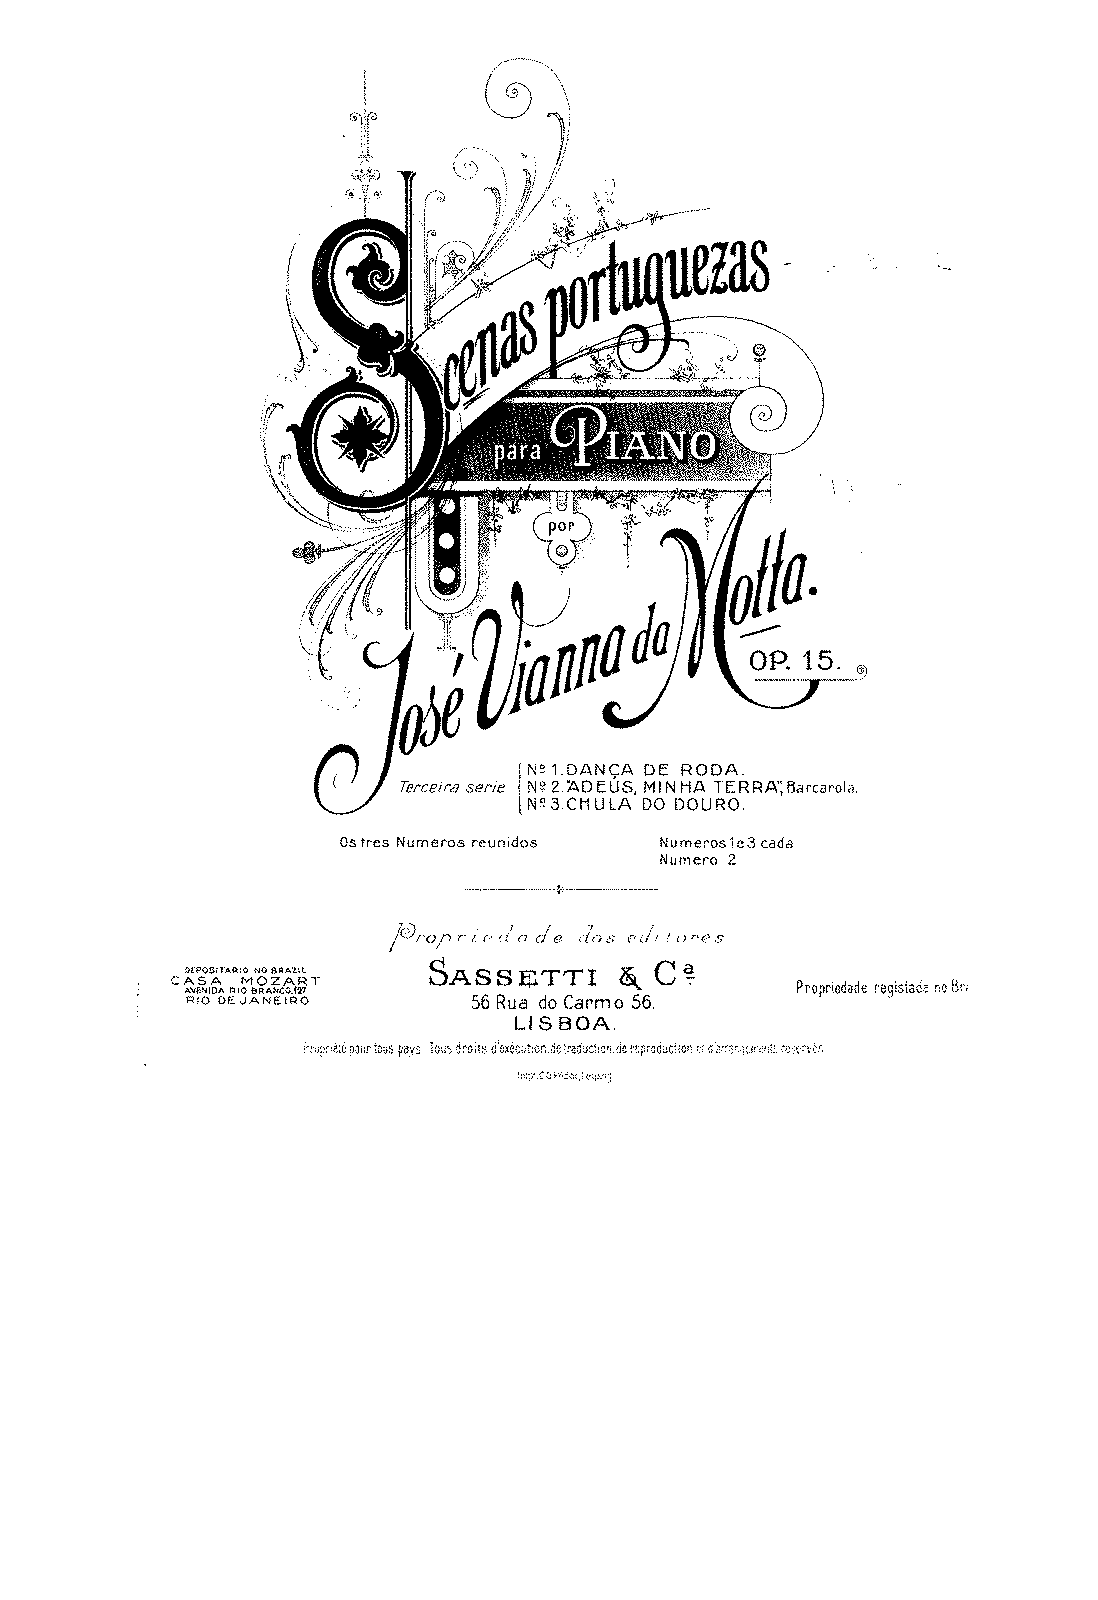 SIBLEY1802.11958.8330-39087012668572piano vol 2.pdf